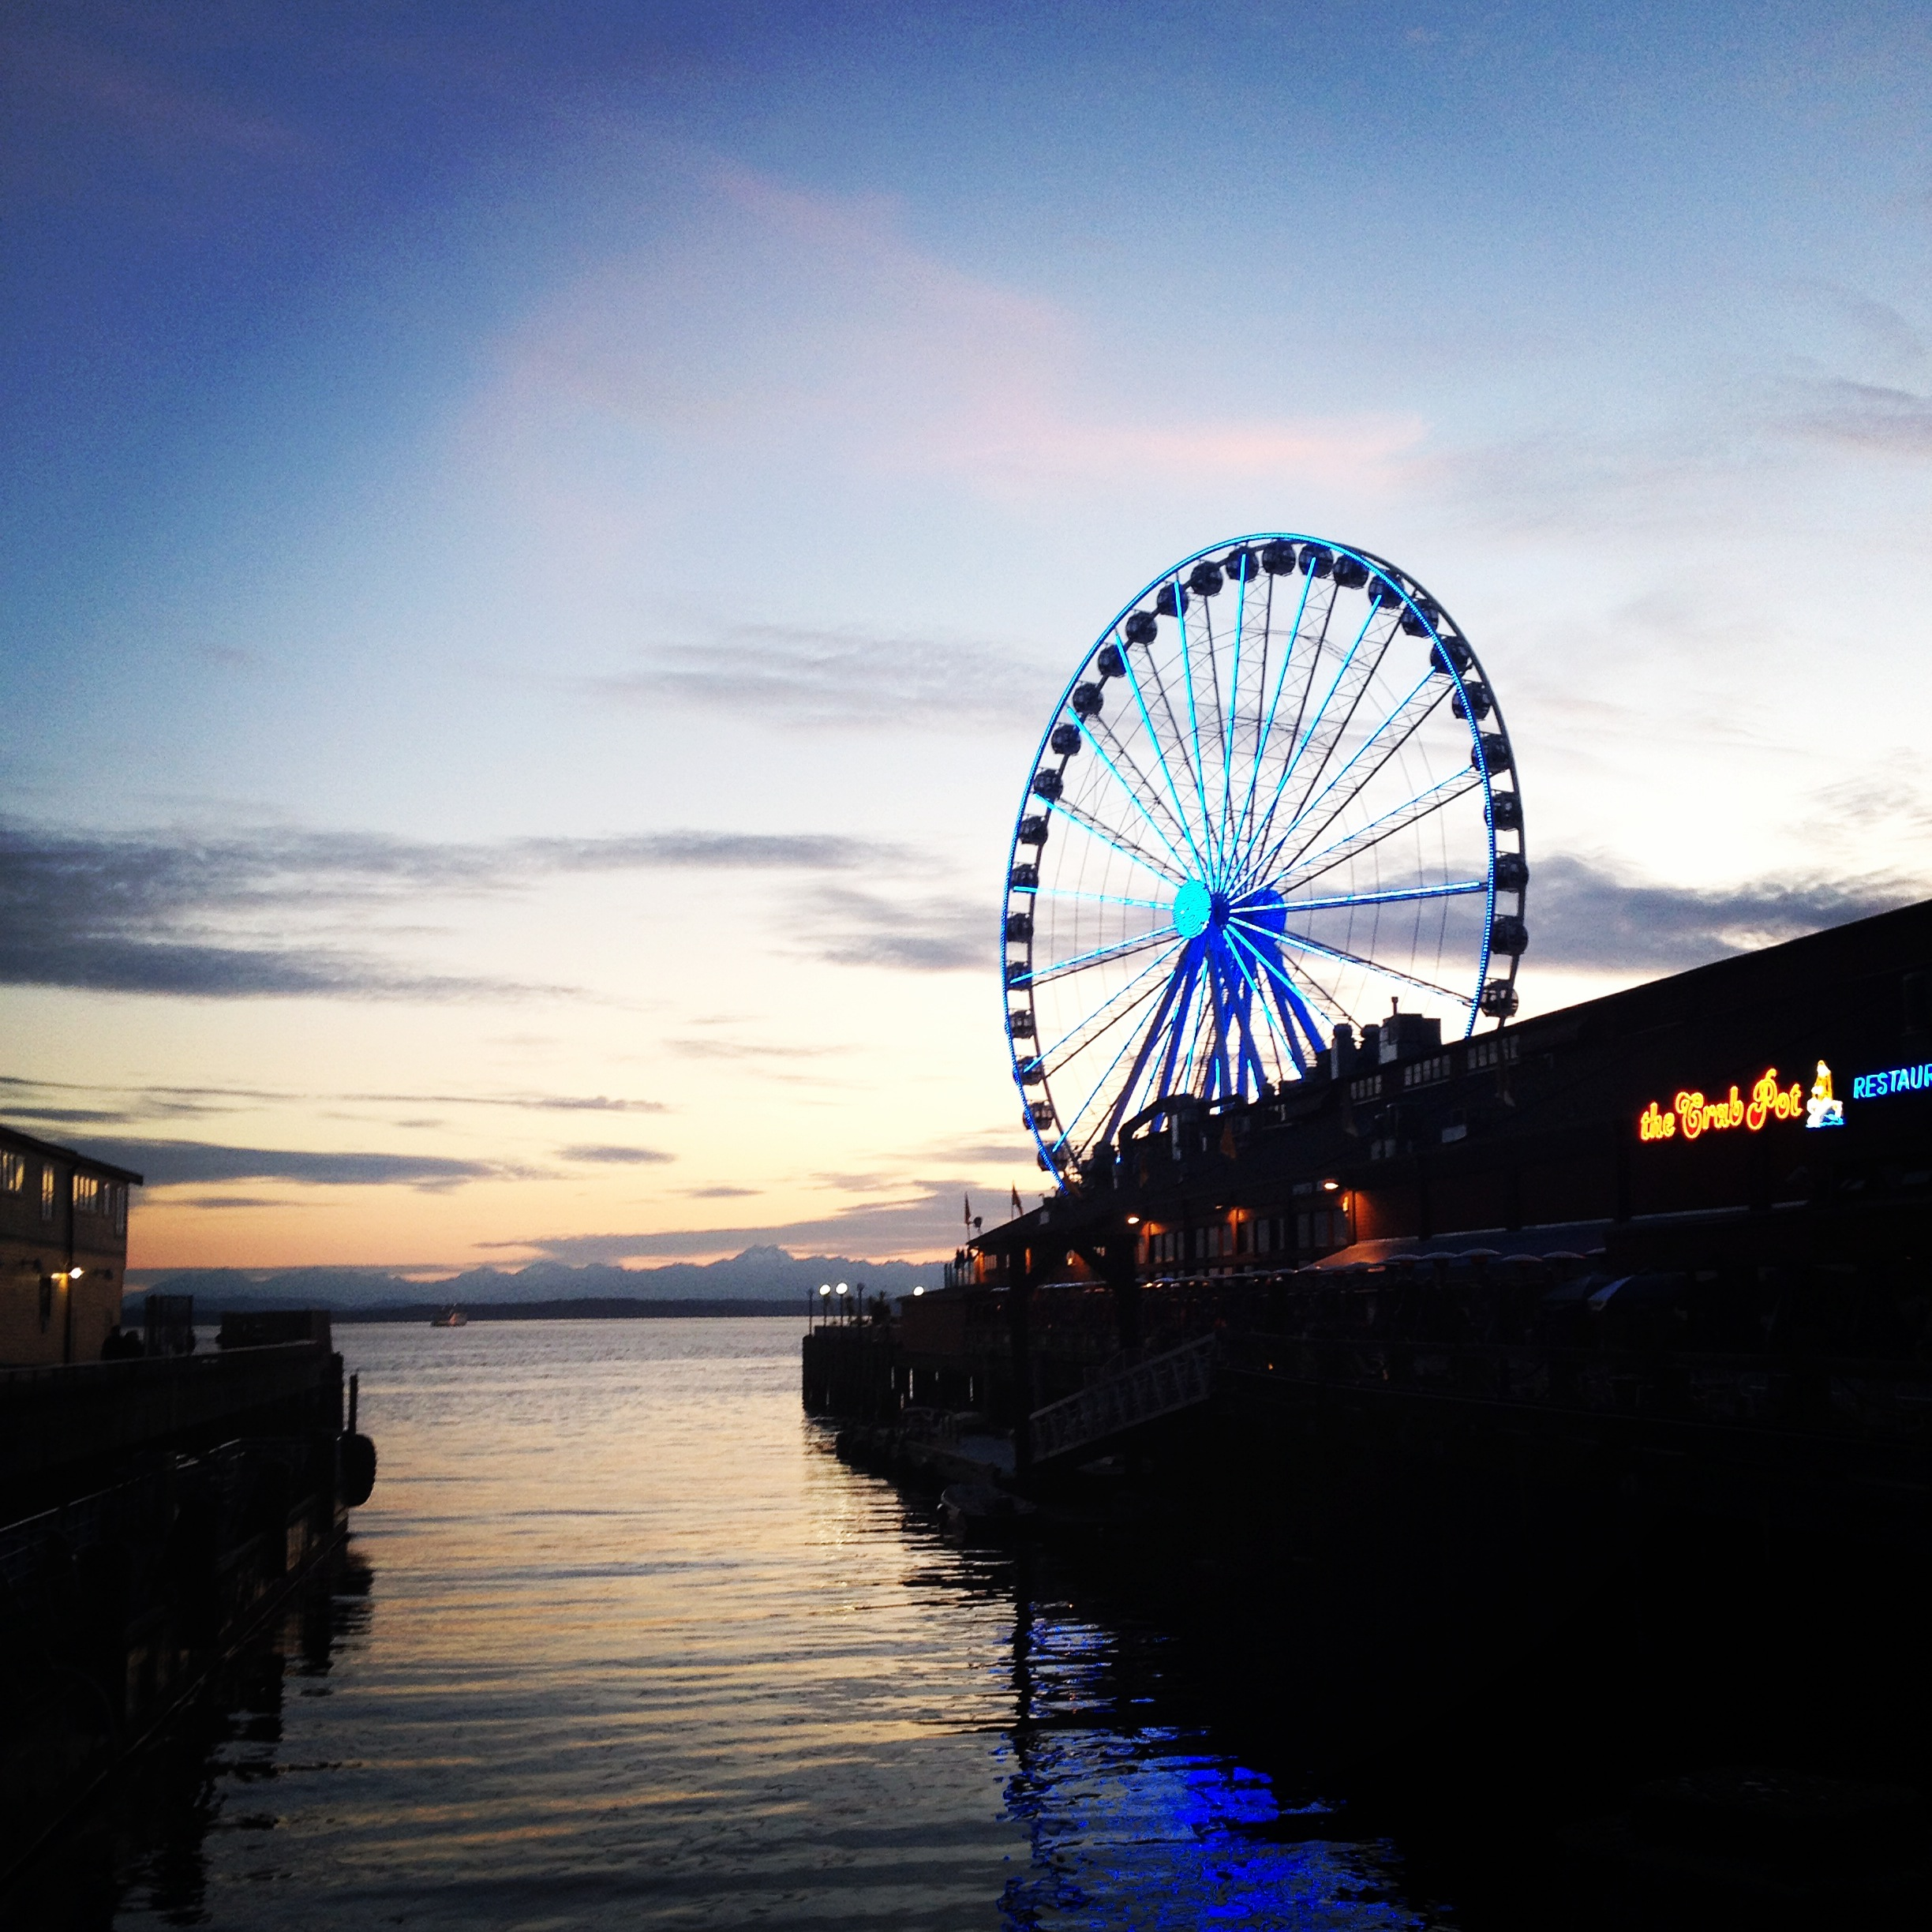 Seattle's great wheel. This was not here two years ago.